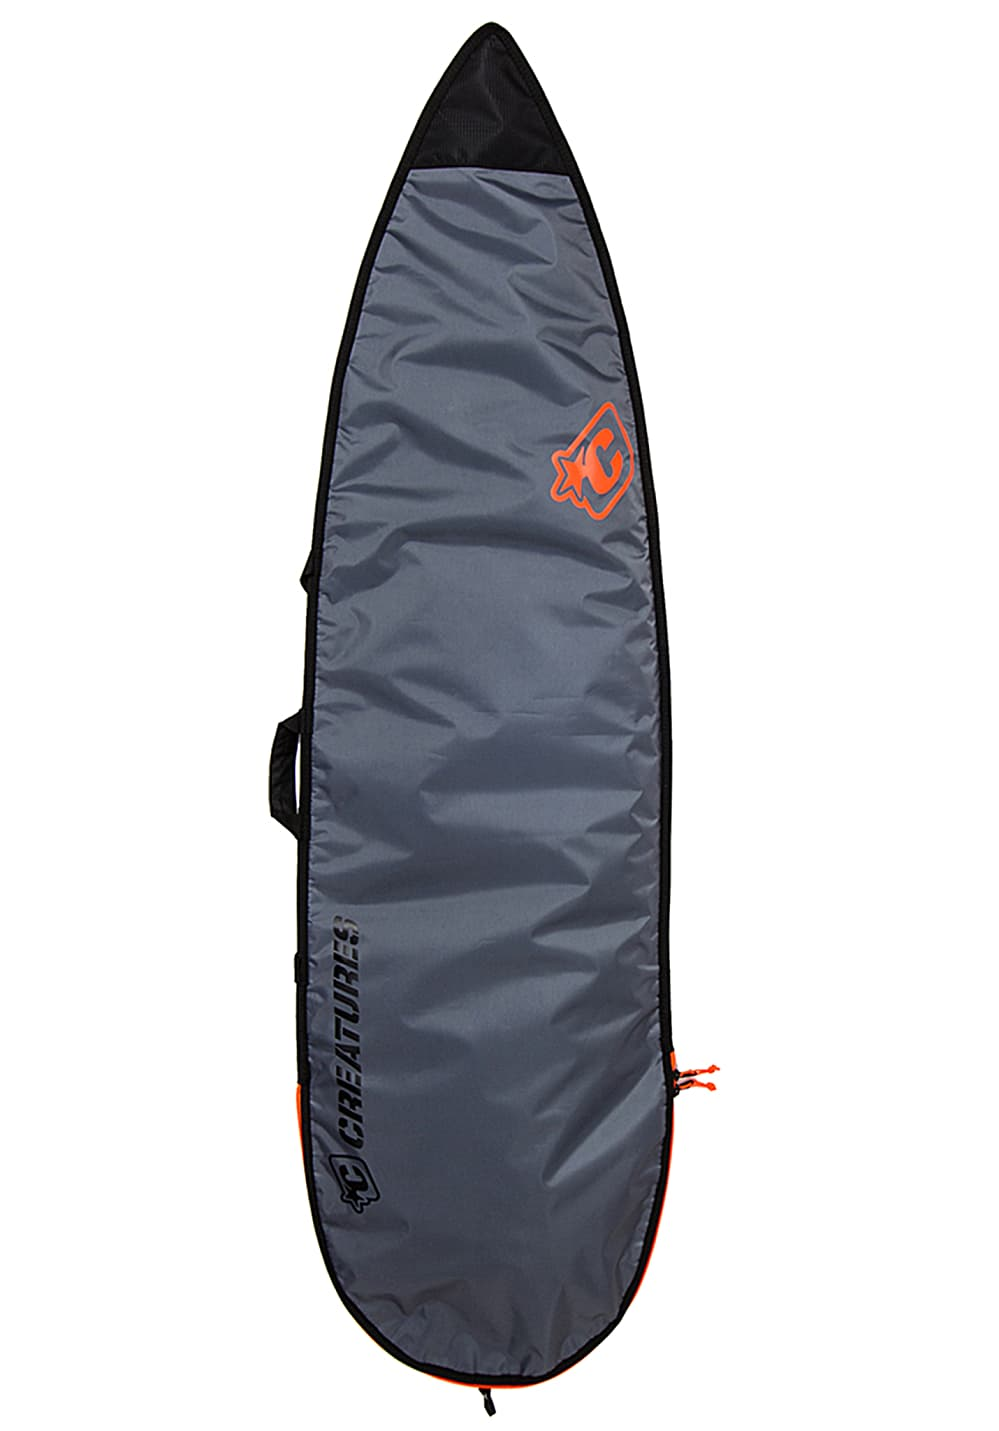 Creatures of Leisure Shortboard Lite Cover 6´3´´ Surfboardtasche - Grau